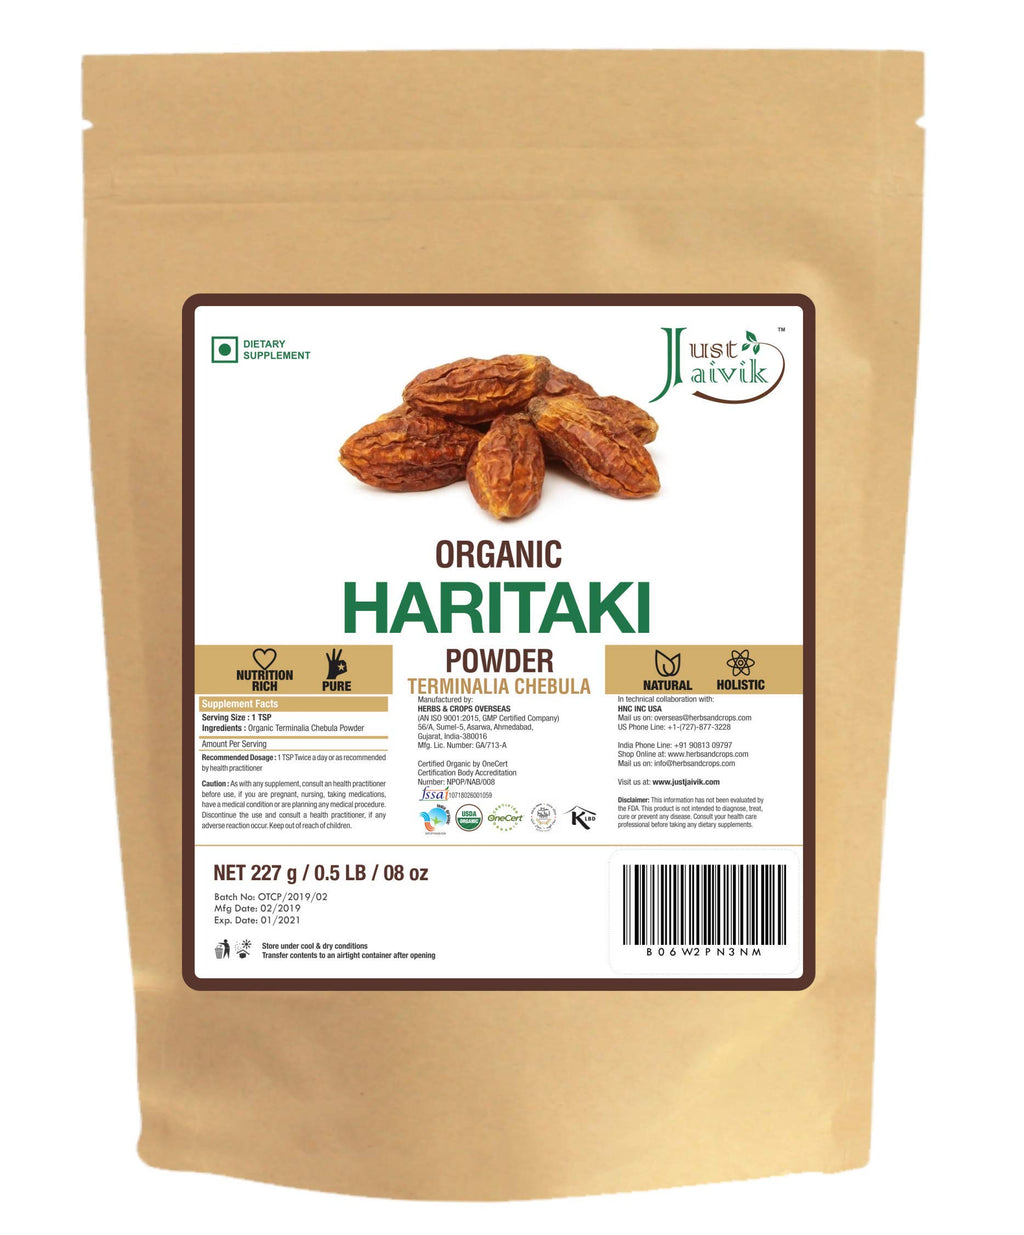 100% Organic Haritaki Powder - Terminalia Chebula -227g / 0.5 LB - USDA Certified Organic - an Ayurvedic Herb for Detoxification & Rejuvenation for Vata